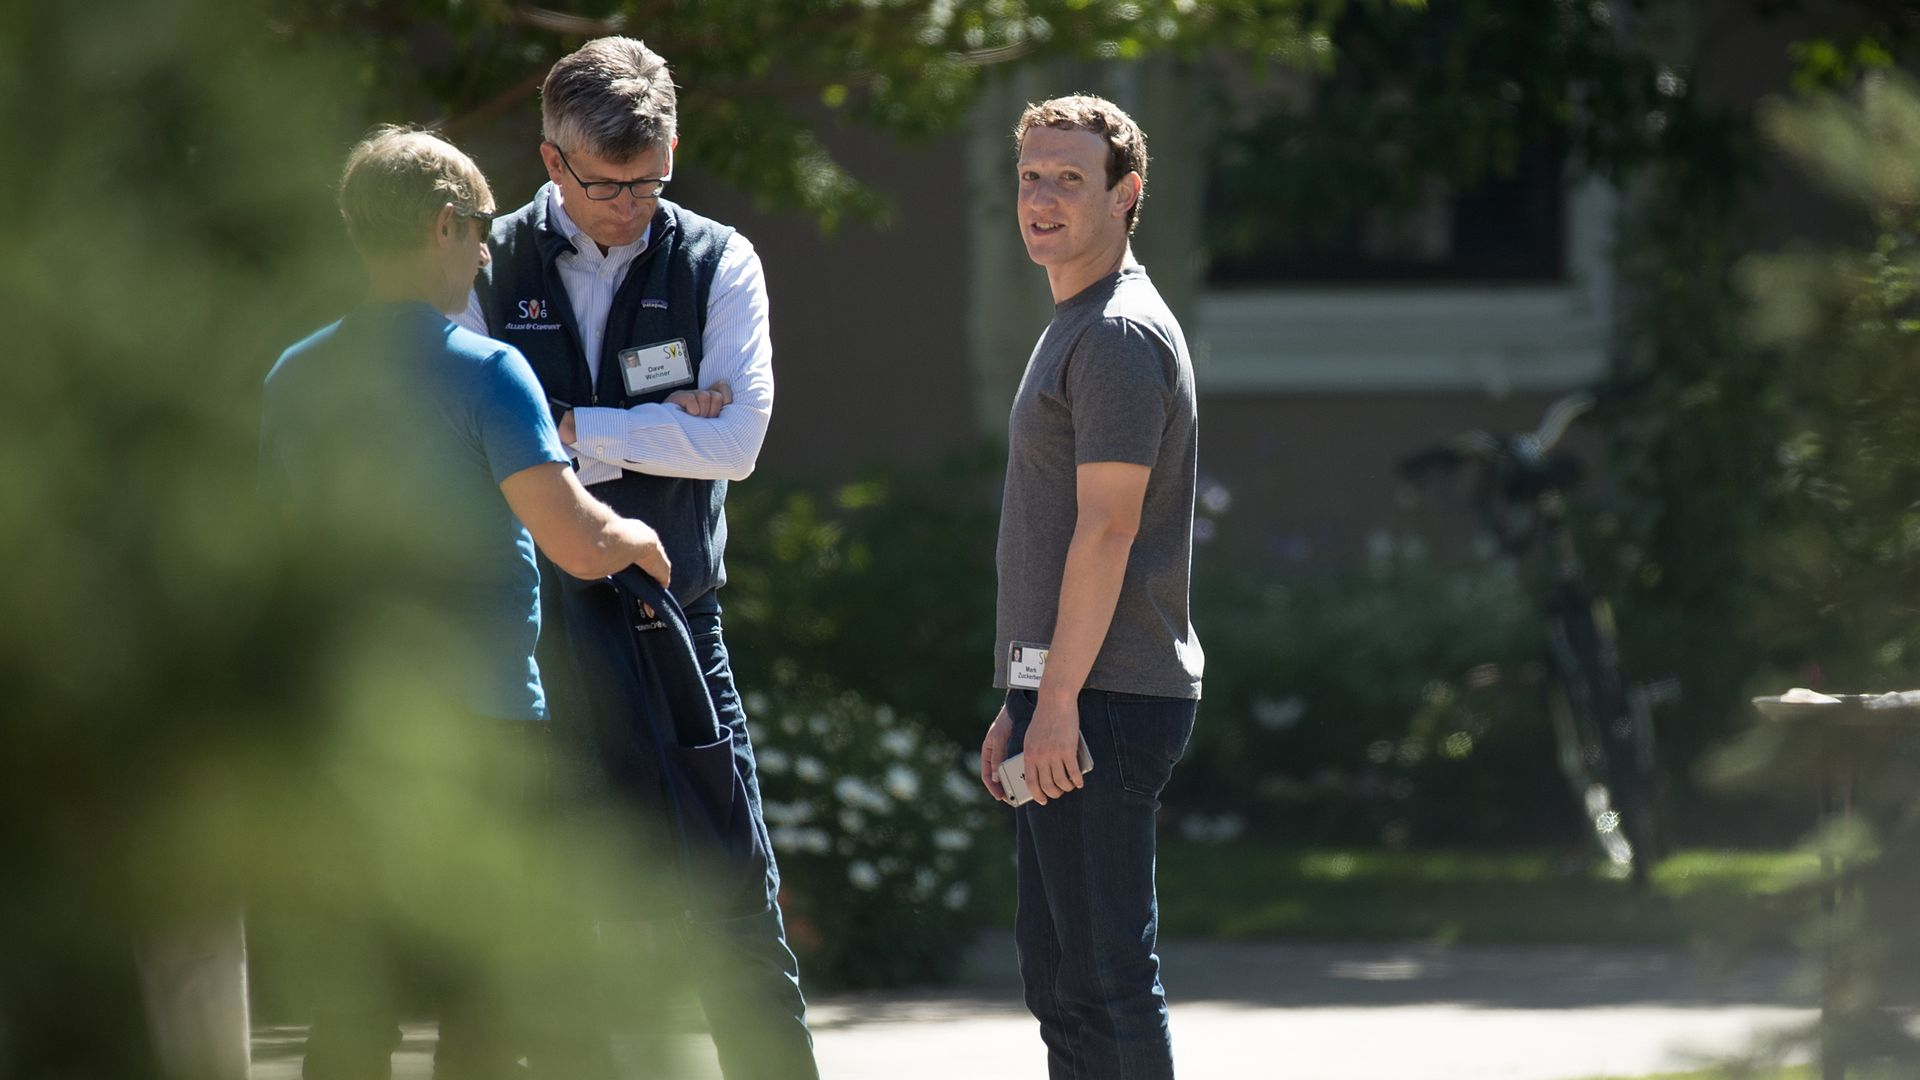 Mark Zuckberg stands with two other men